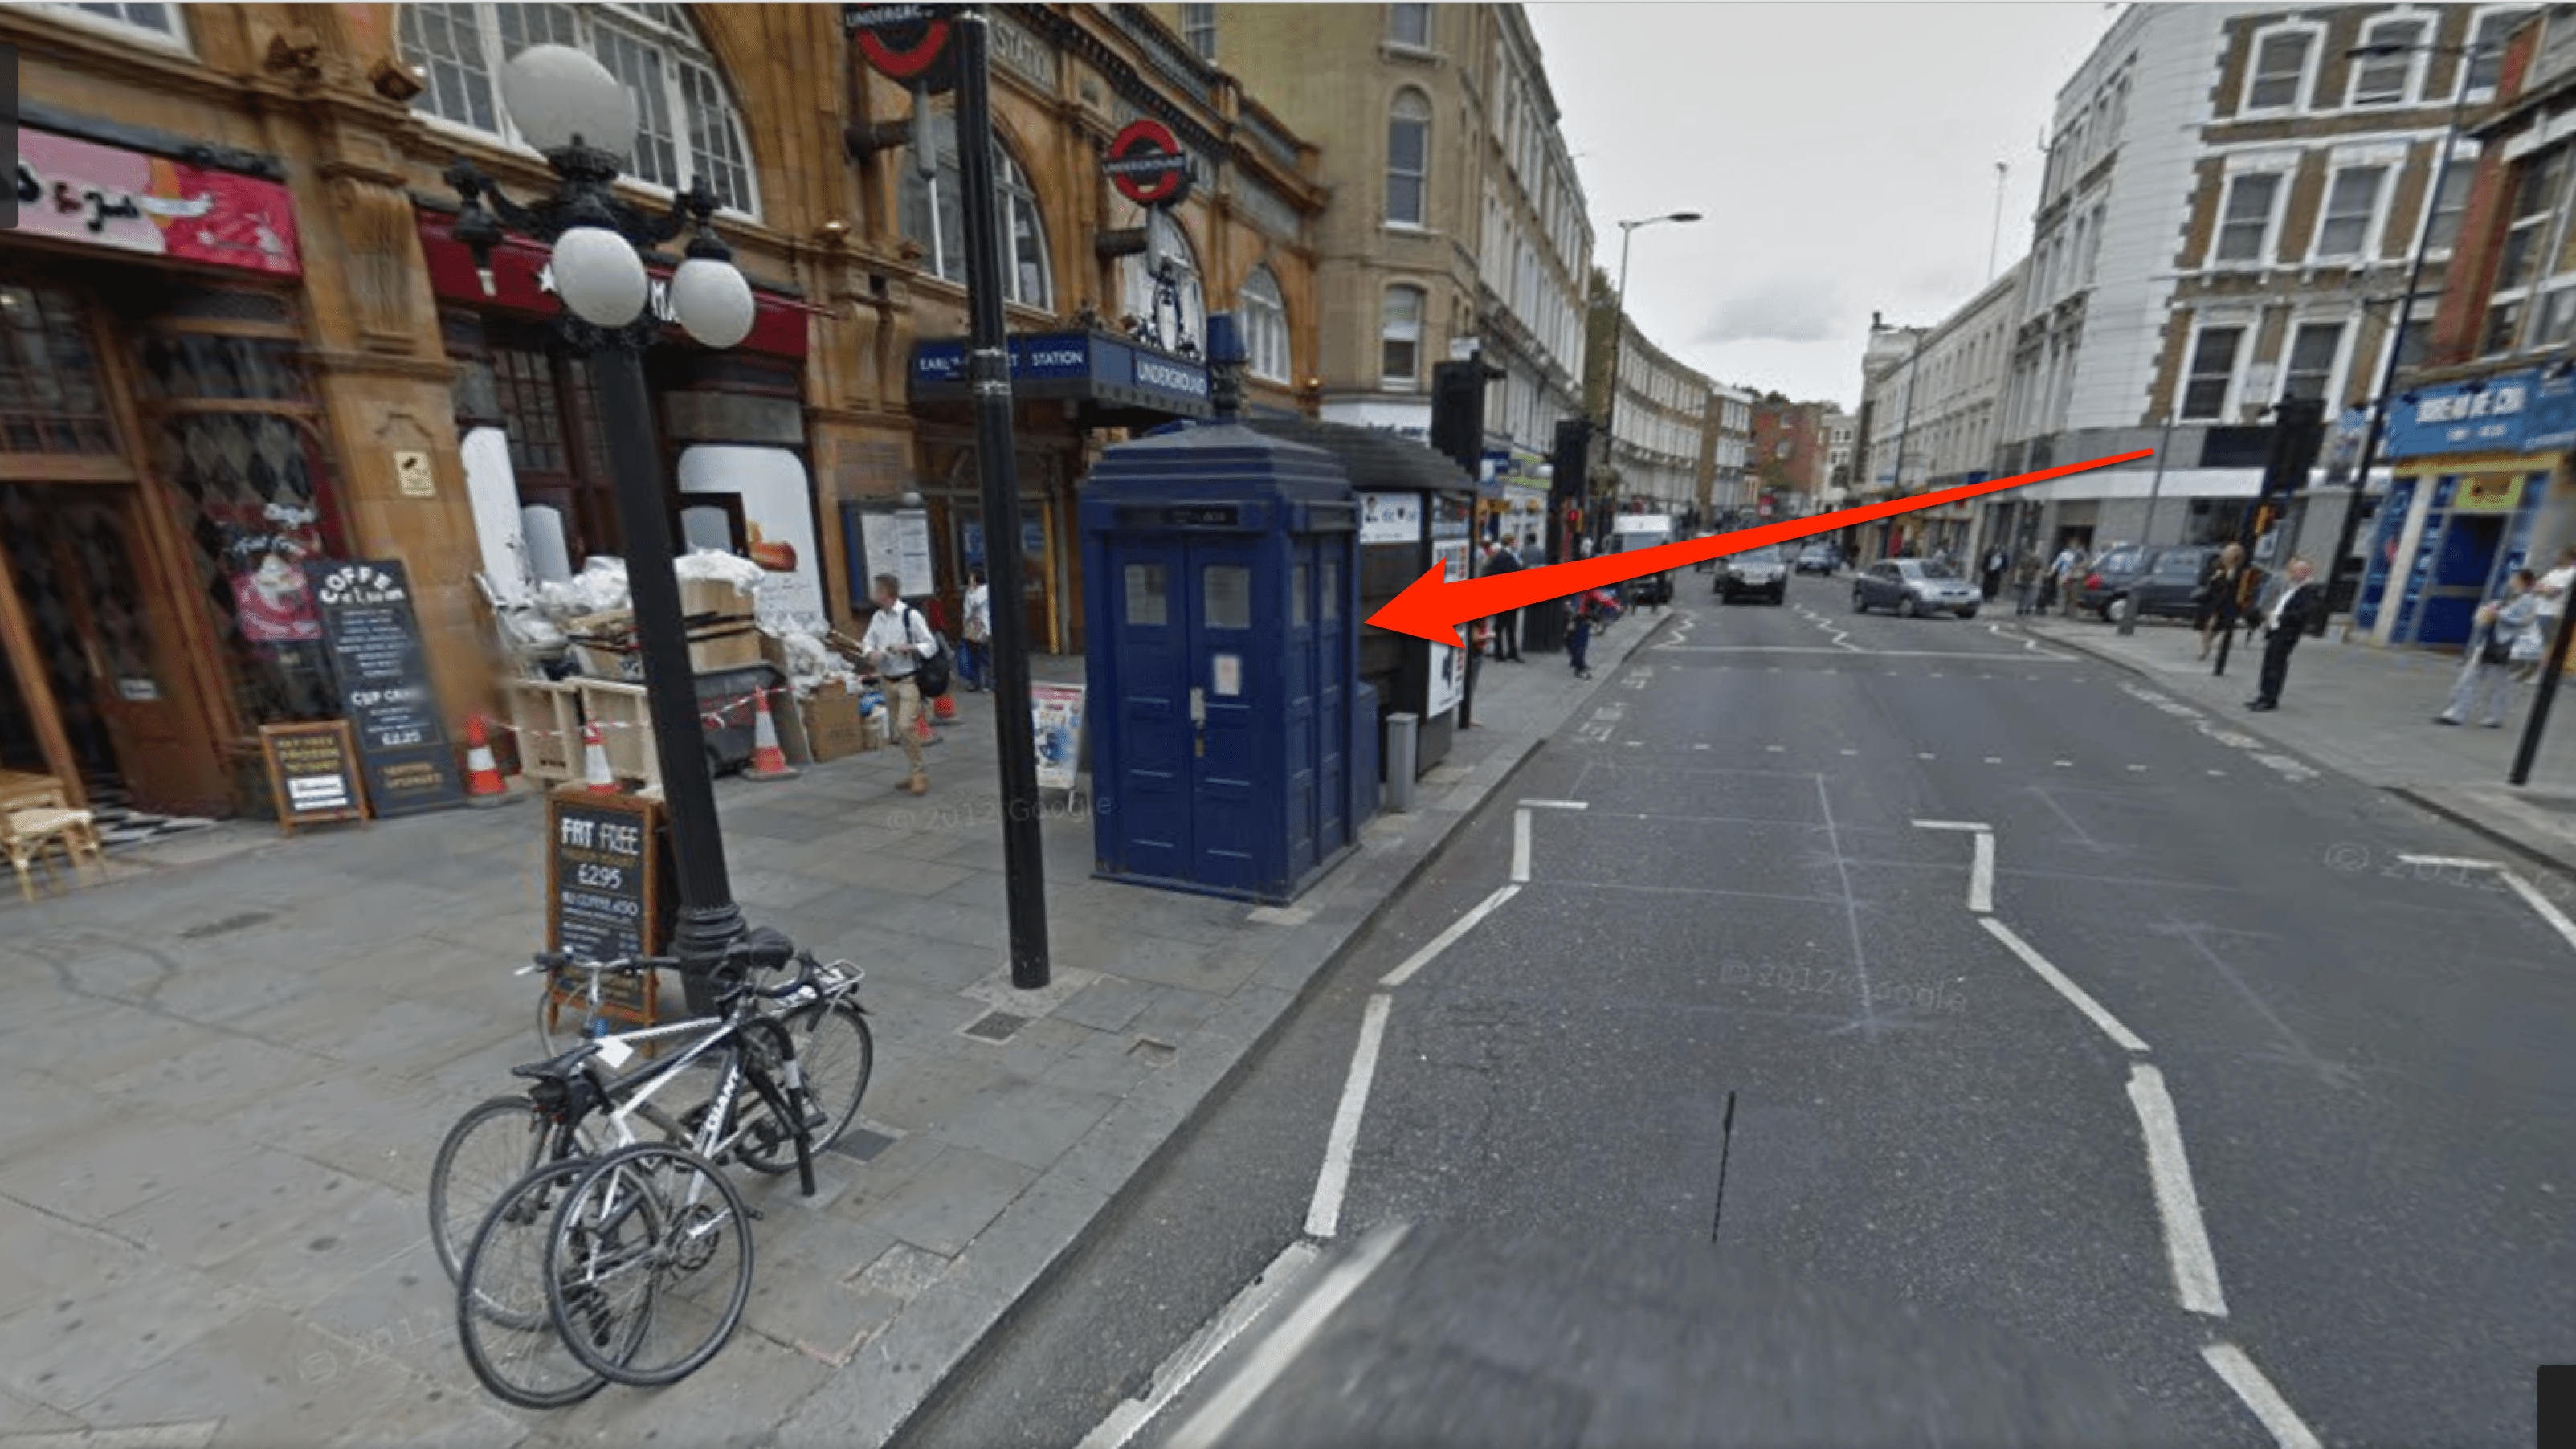 How to Find the 'Doctor Who' TARDIS in Google Maps Google Map Sightings on google car sightings, chinese dragon sightings, street view sightings, international space station sightings,